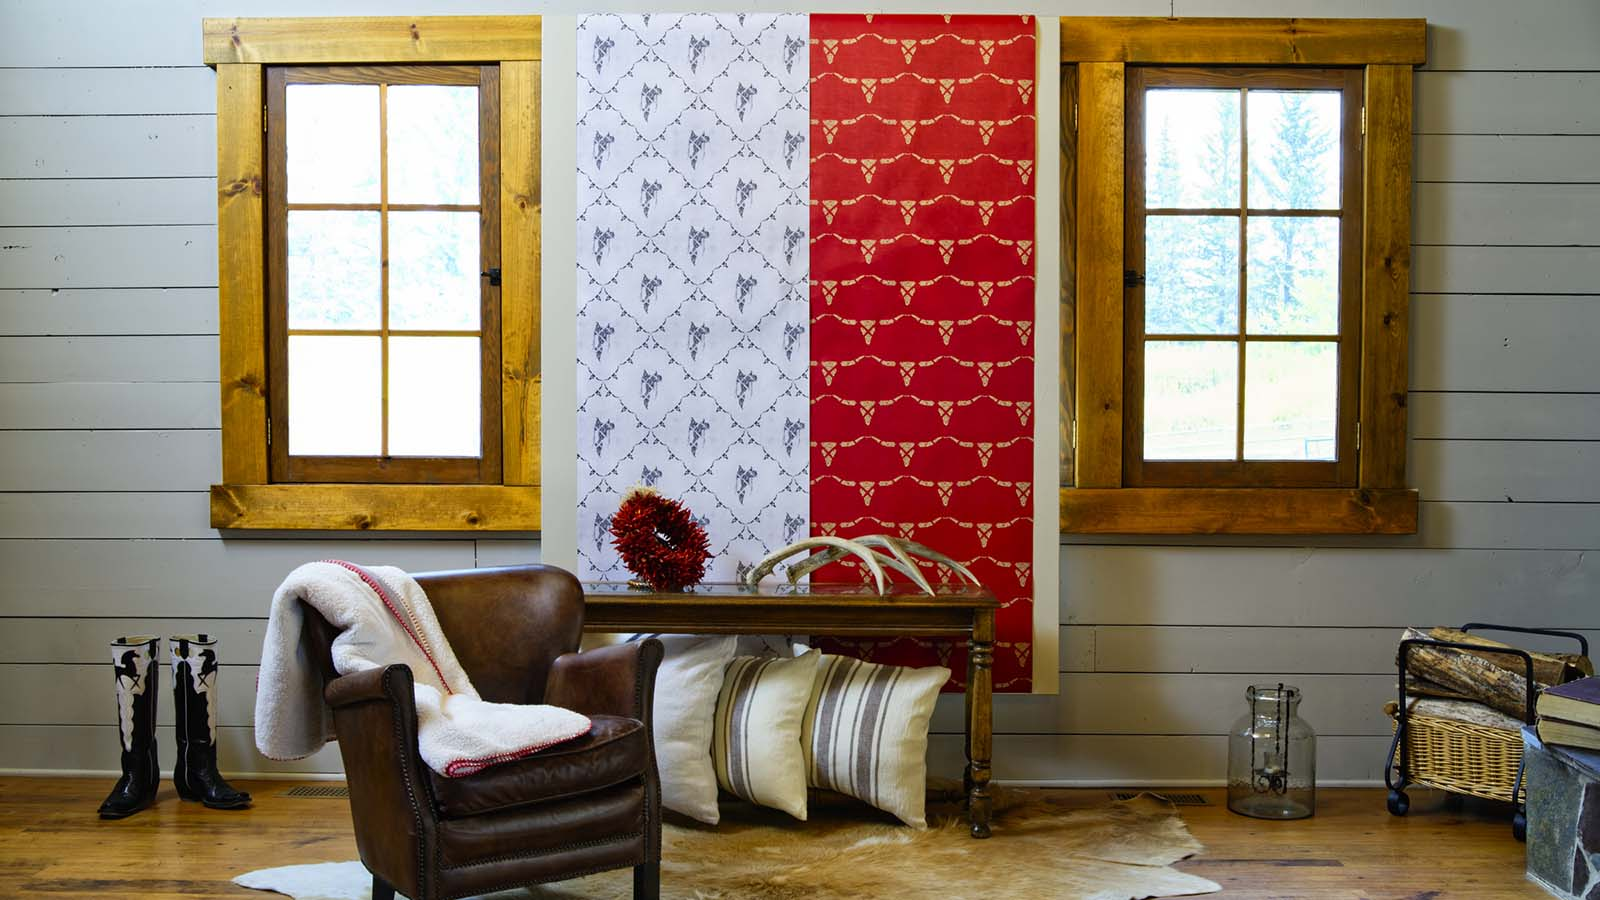 SLCheval designs Western wallpaper